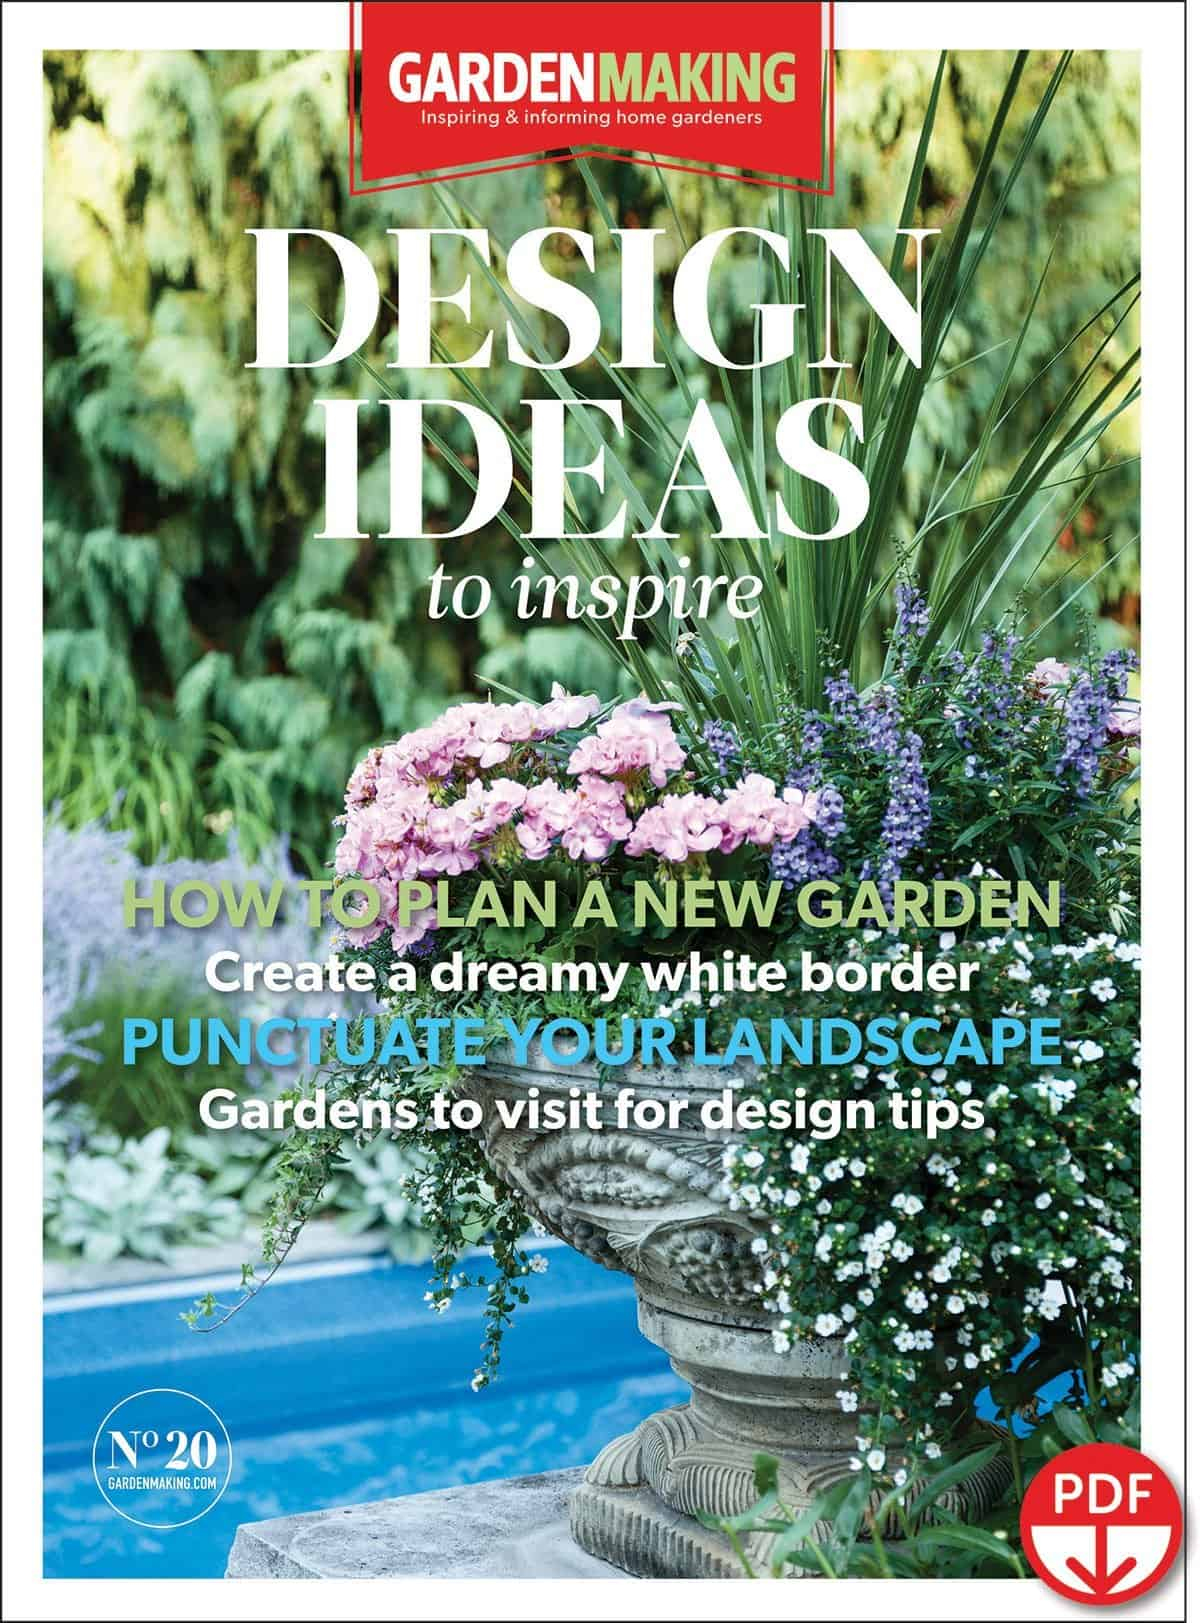 Planning a new garden? Traveling to visit gardens for design ideas. Garden Making issue No. 20 focuses on design ideas for gardens.